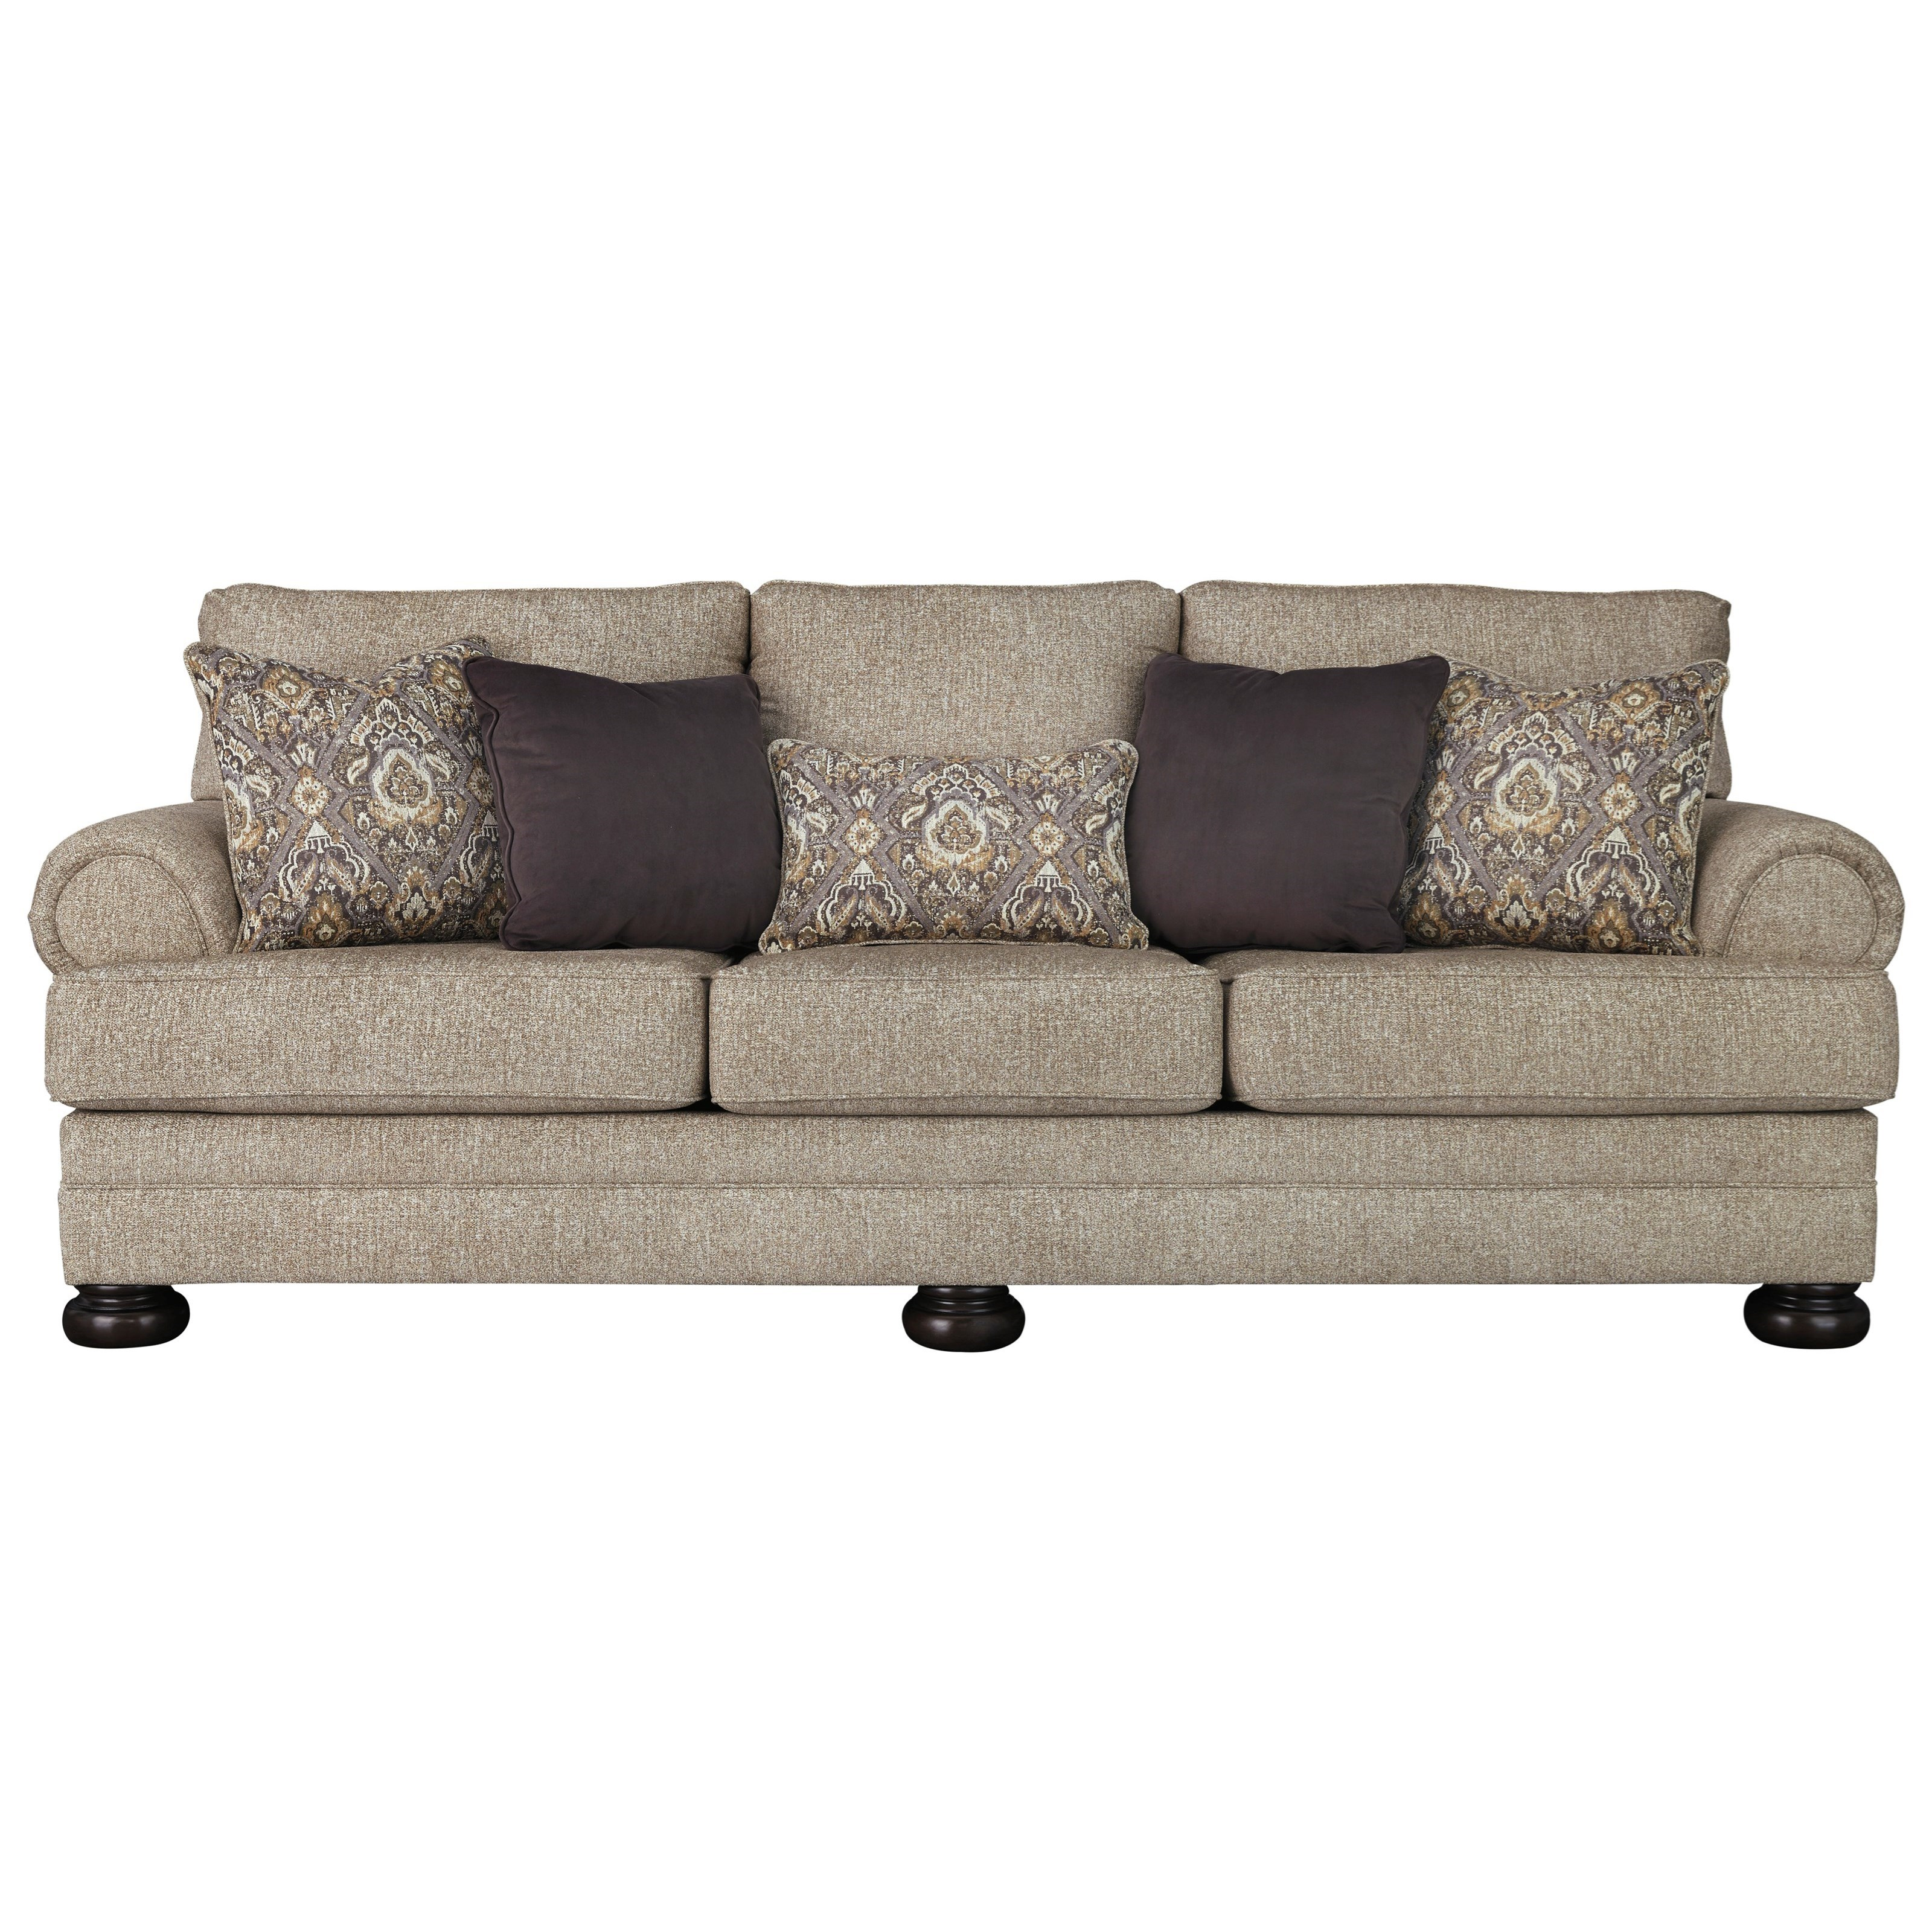 Kananwood Sofa by Signature Design by Ashley at Sparks HomeStore